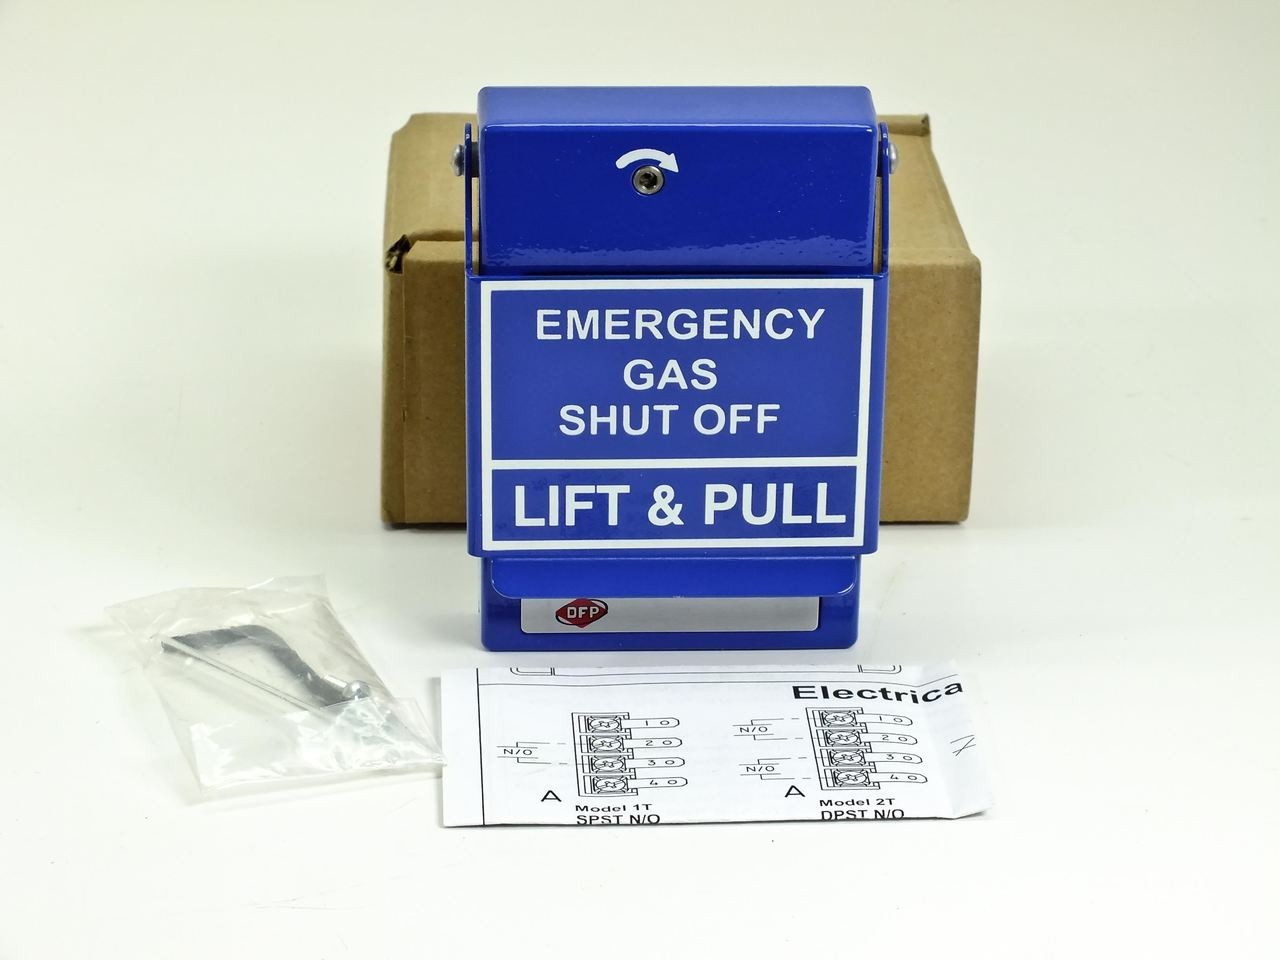 Rgs Rms 2t Lp Lift And Pull Emergency Gas Shut Off Station Blue